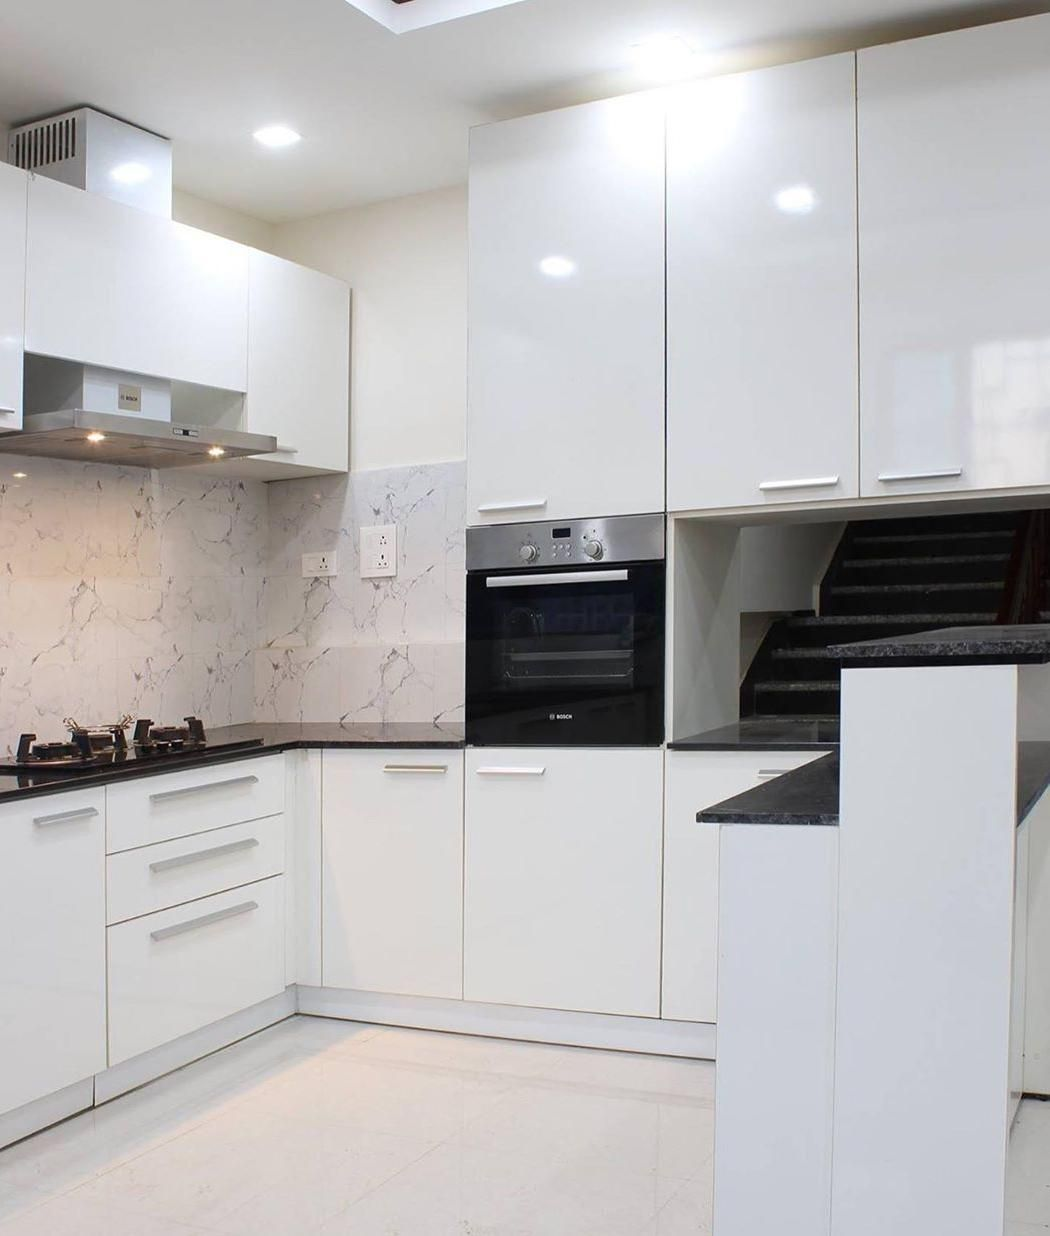 Best Modern White Kitchen Design Ideas Modern White Kitchens Best Backsplash For White Kitchen W Small White Kitchens White Modern Kitchen White Kitchen Design